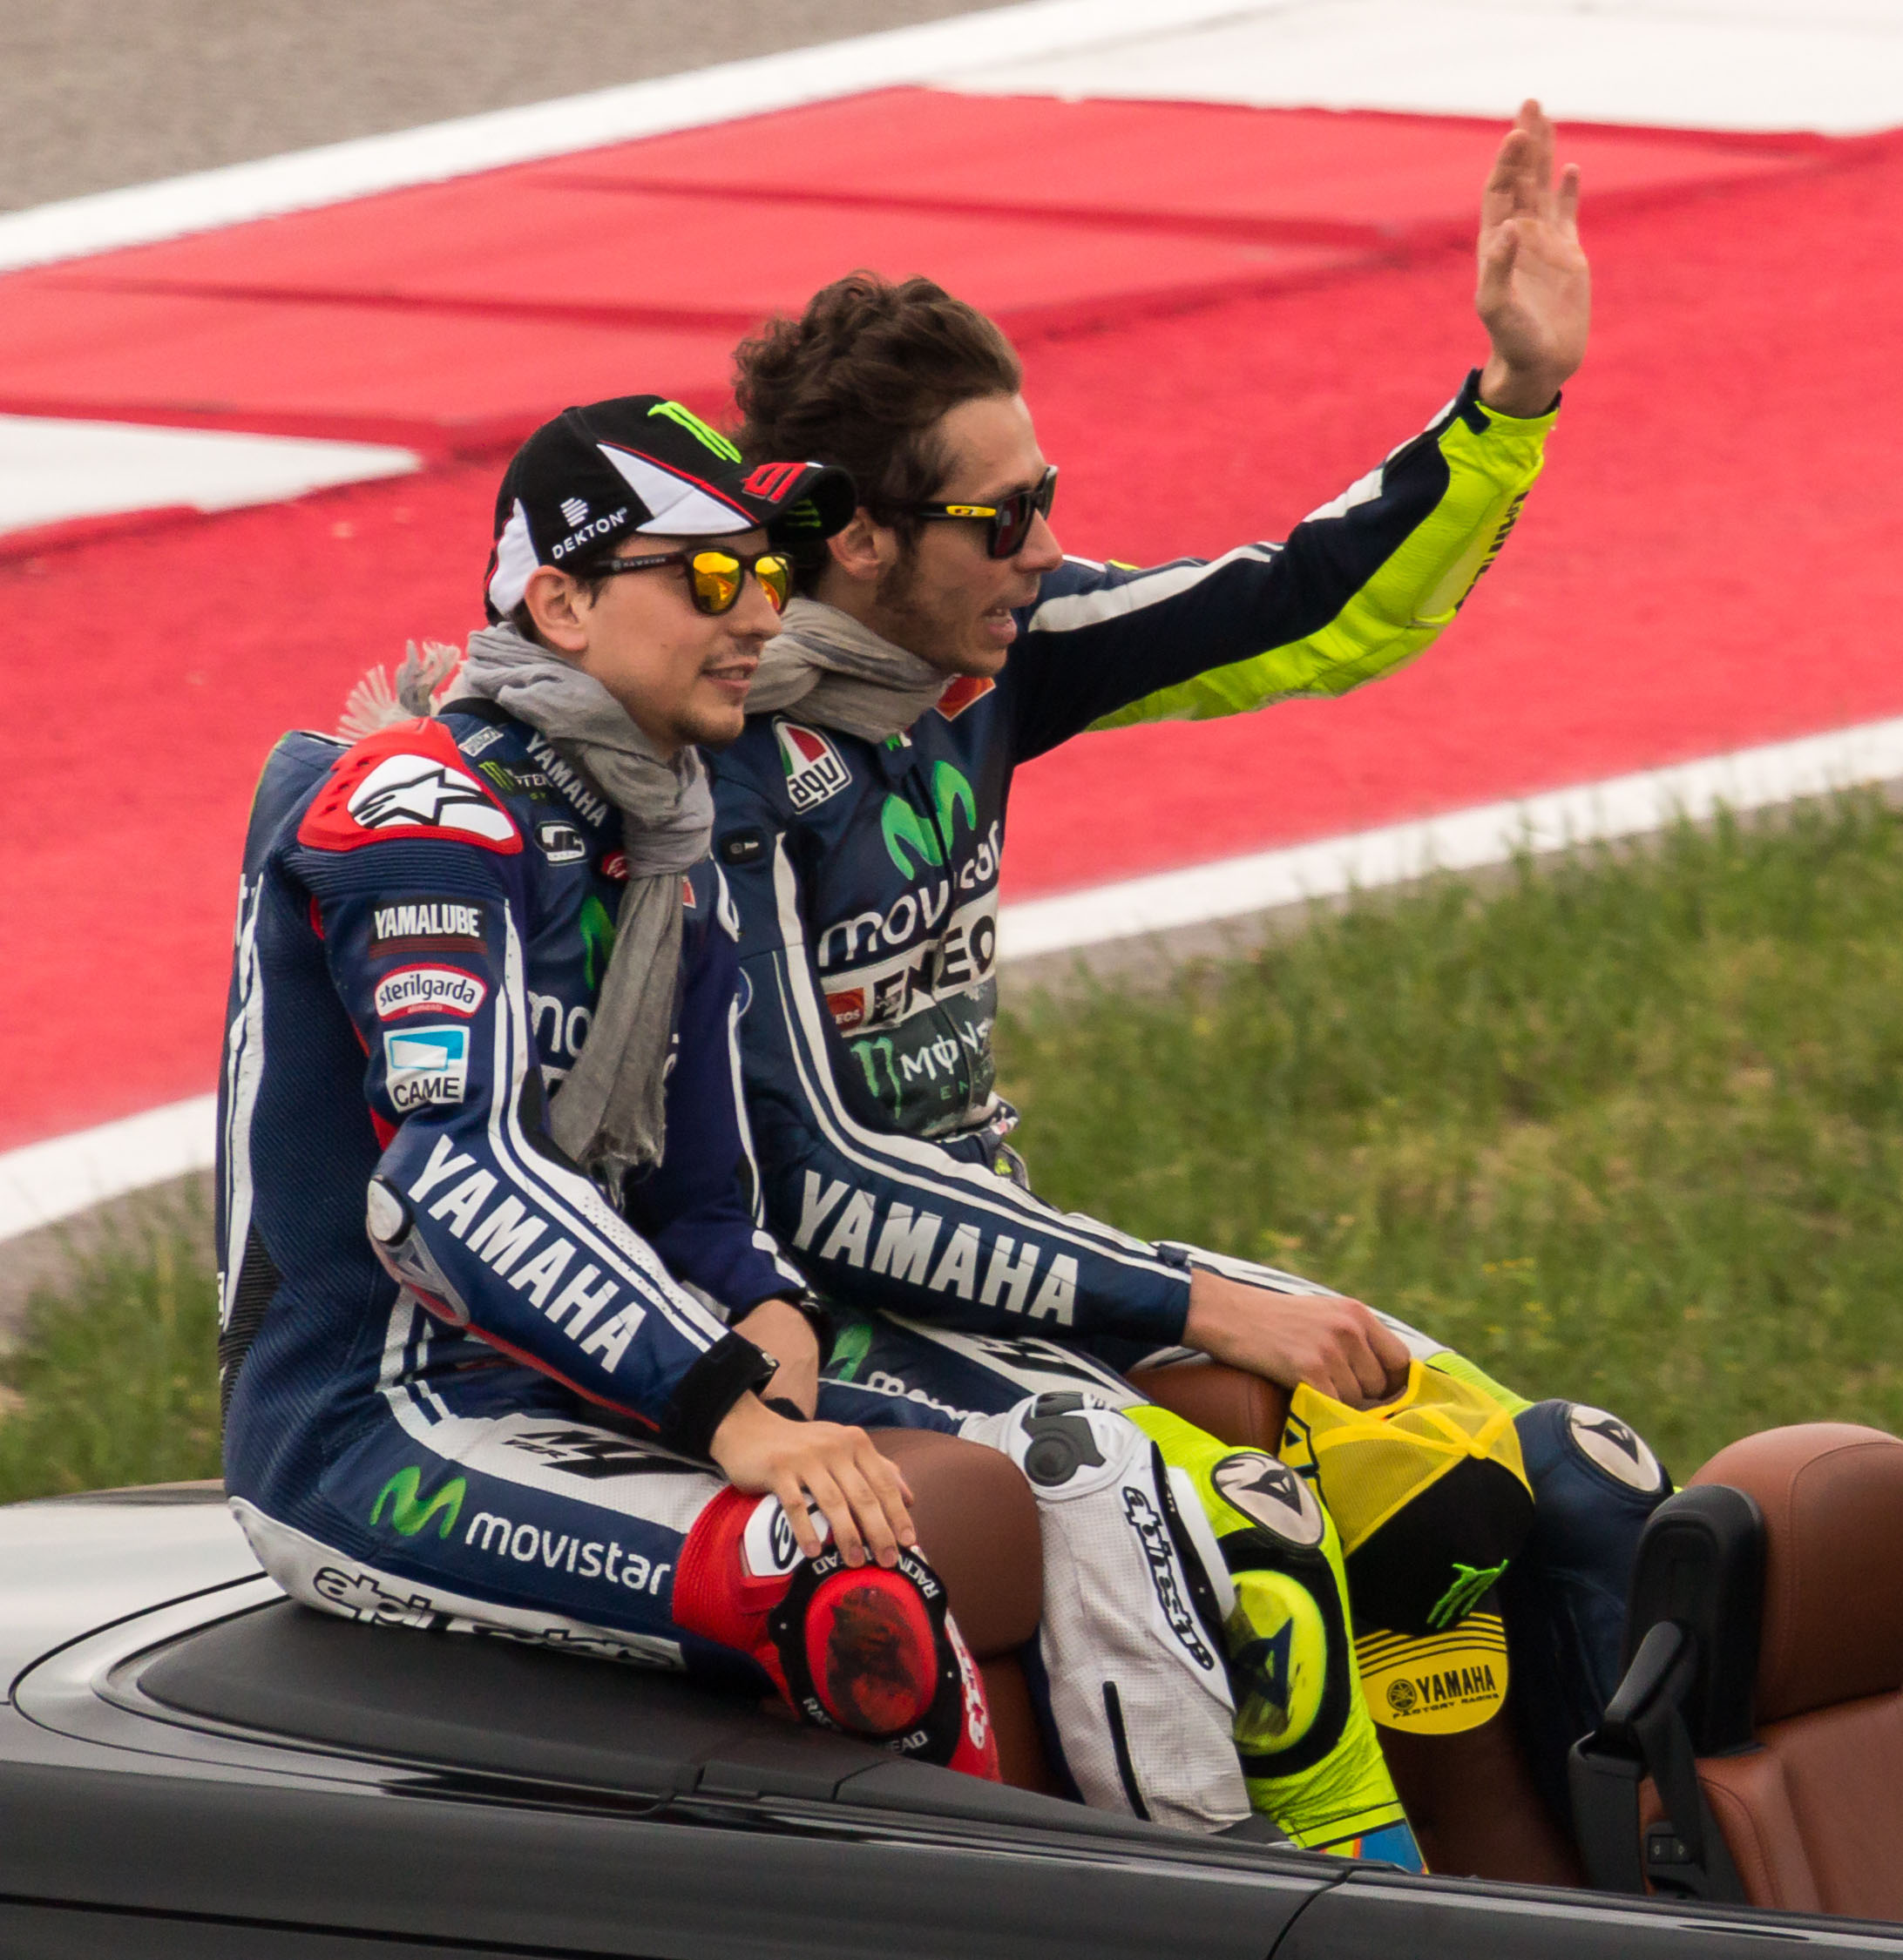 File:Jorge Lorenzo and Valentino Rossi - 2014 US Grand Prix (cropped).jpg - Wikimedia Commons